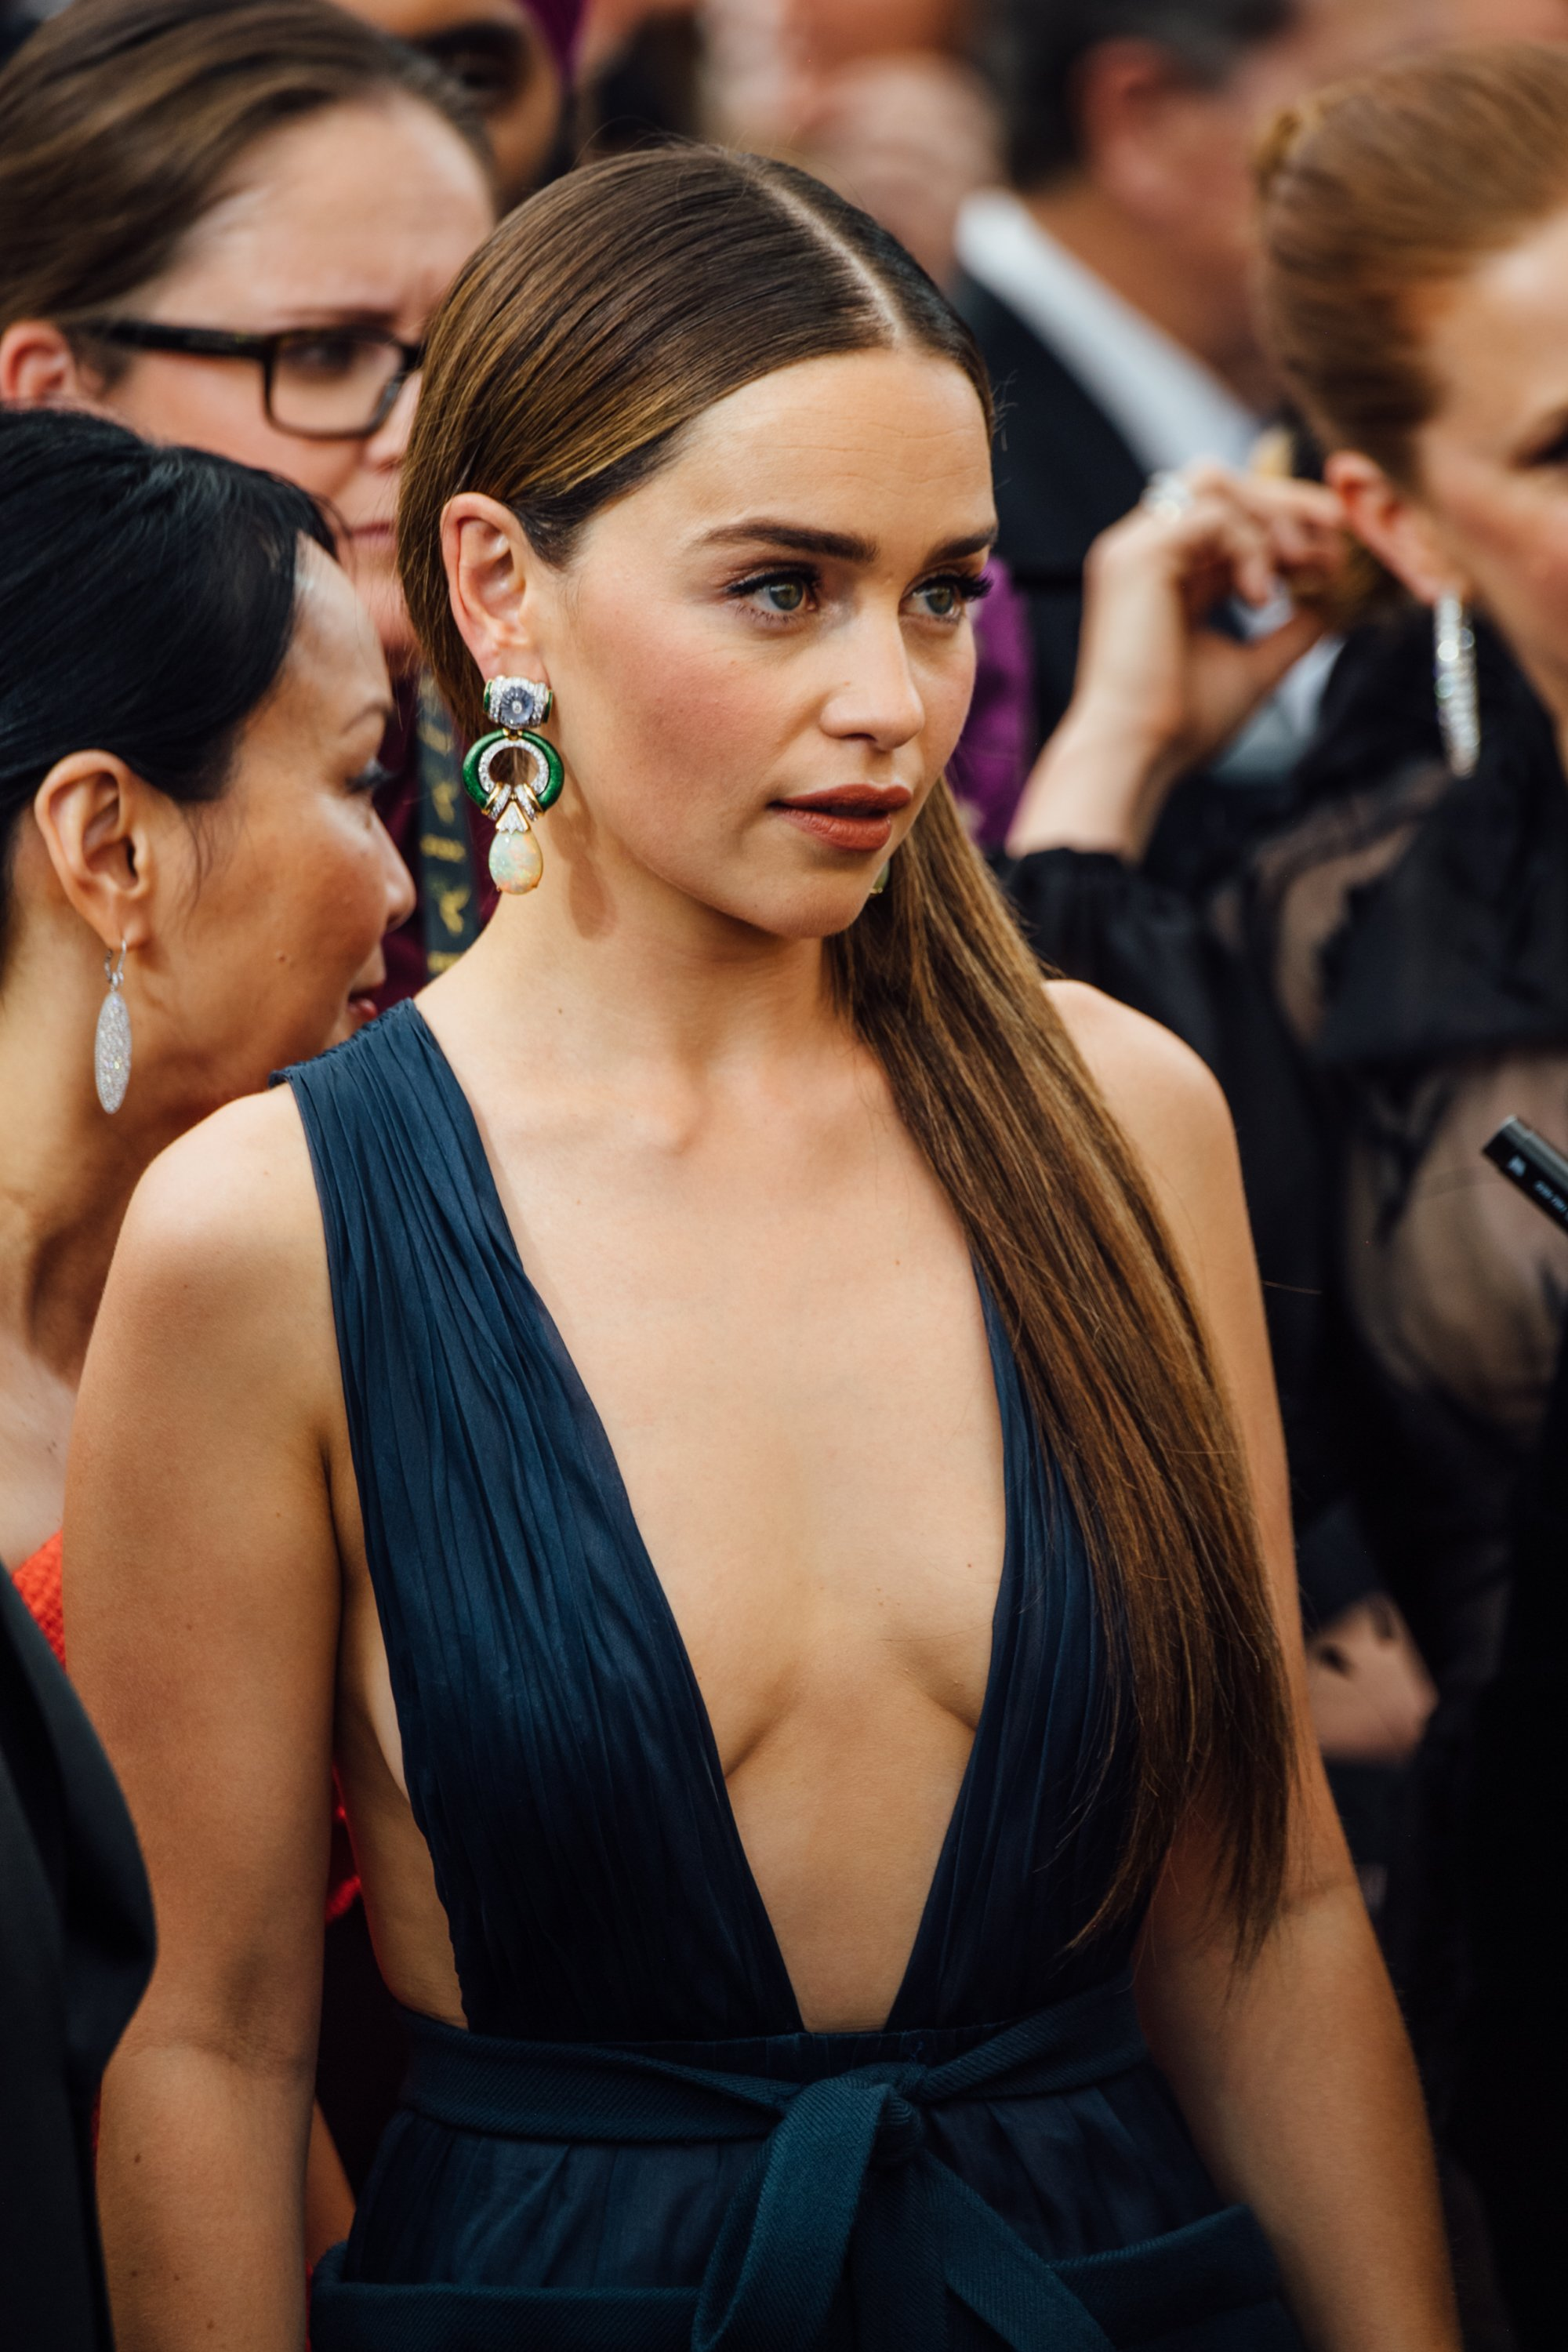 Emilia Clarke arrives at the 71st Emmy Awards at Microsoft Theater on September 22, 2019 in Los Angeles, California. (Photo by Emma McIntyre/Getty Images)